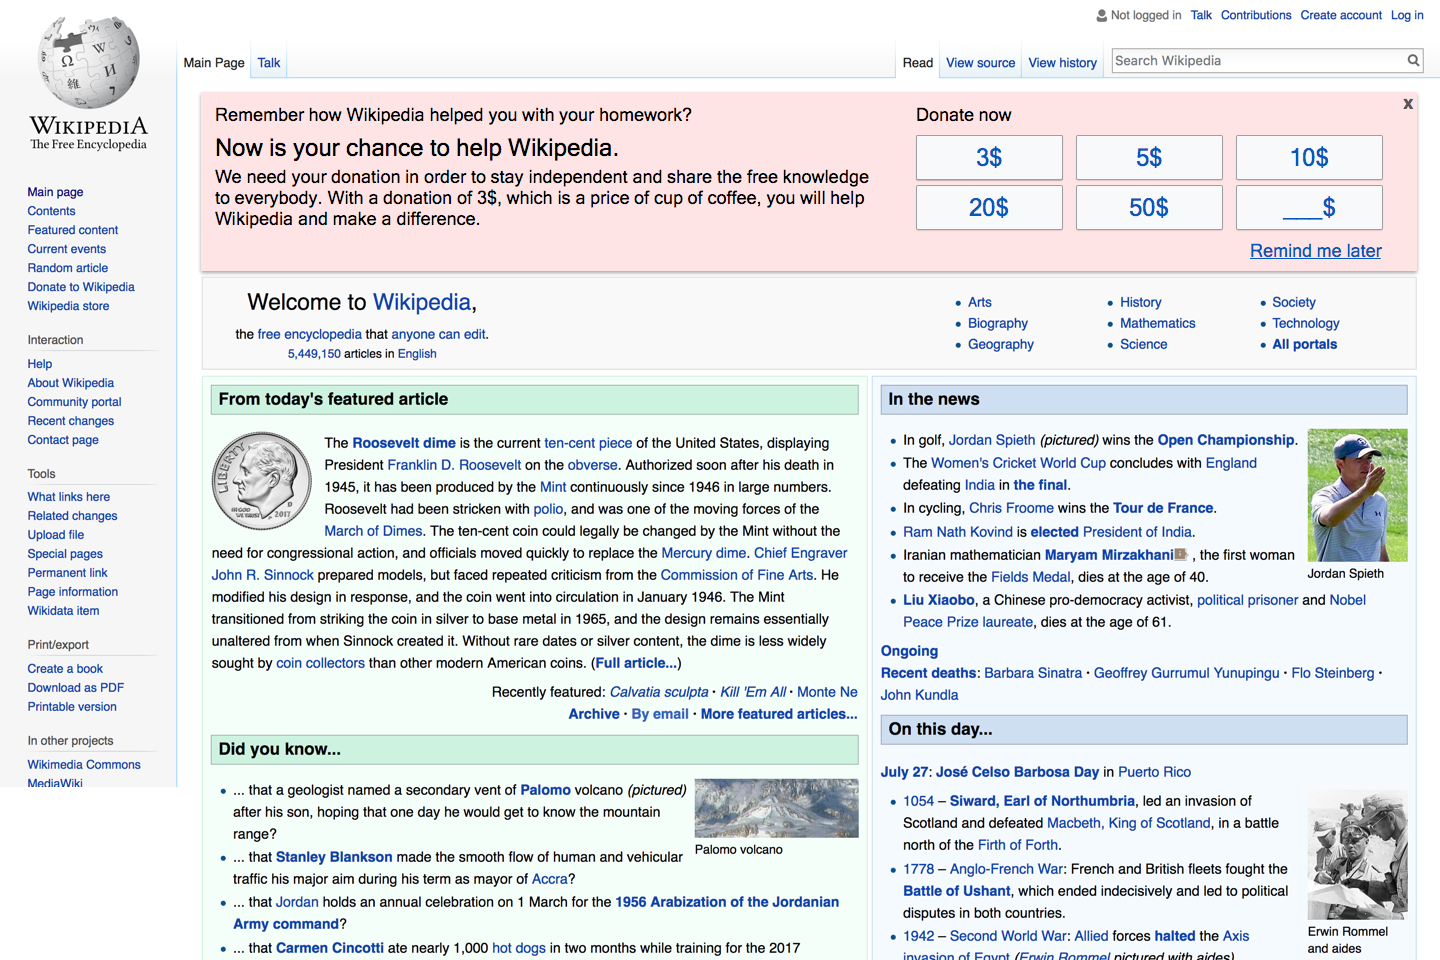 What's up with Wikipedia's donation message? - Omri Lachman